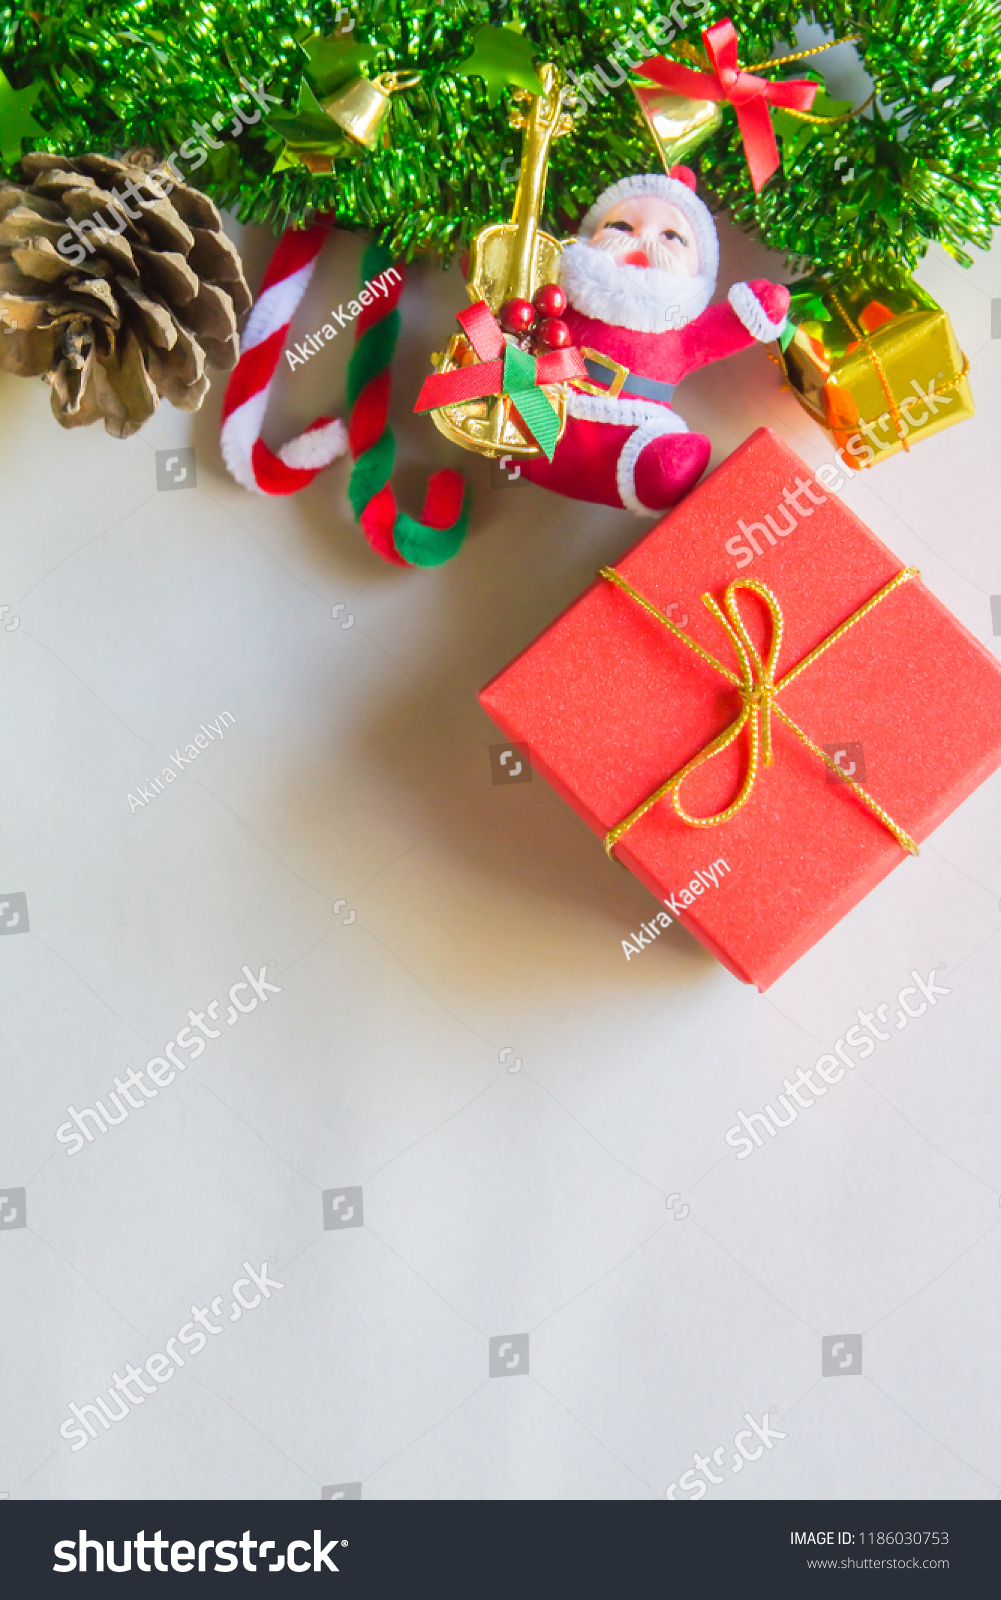 Christmas Symbols Colorful Red Box Gift Stock Photo (Edit Now ...